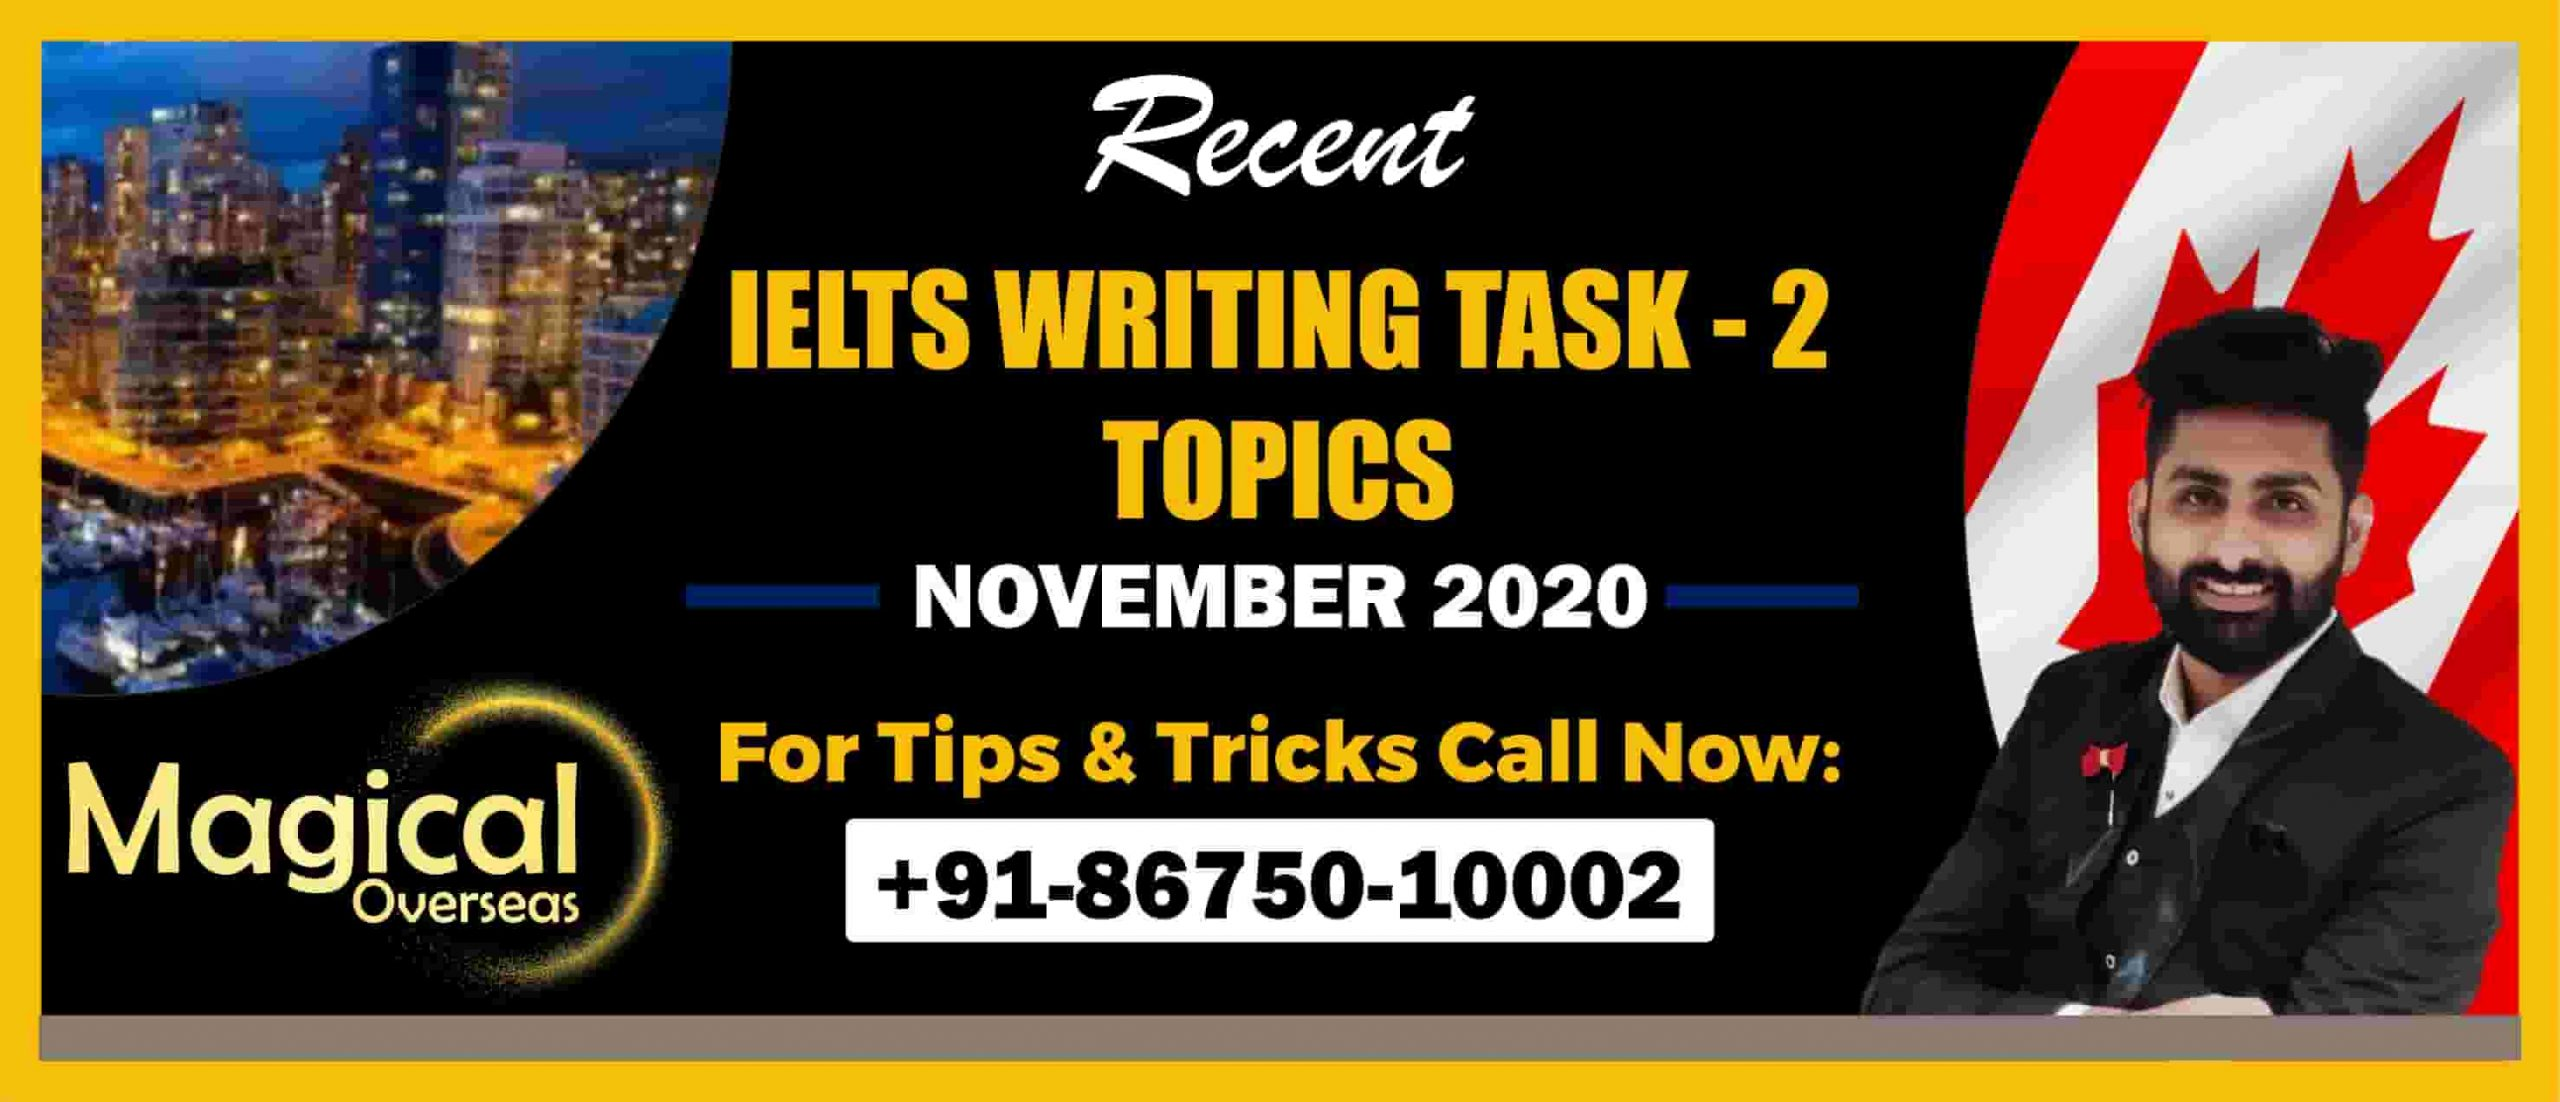 Writing Task 2 Topics Novermeber 2020-min (2)